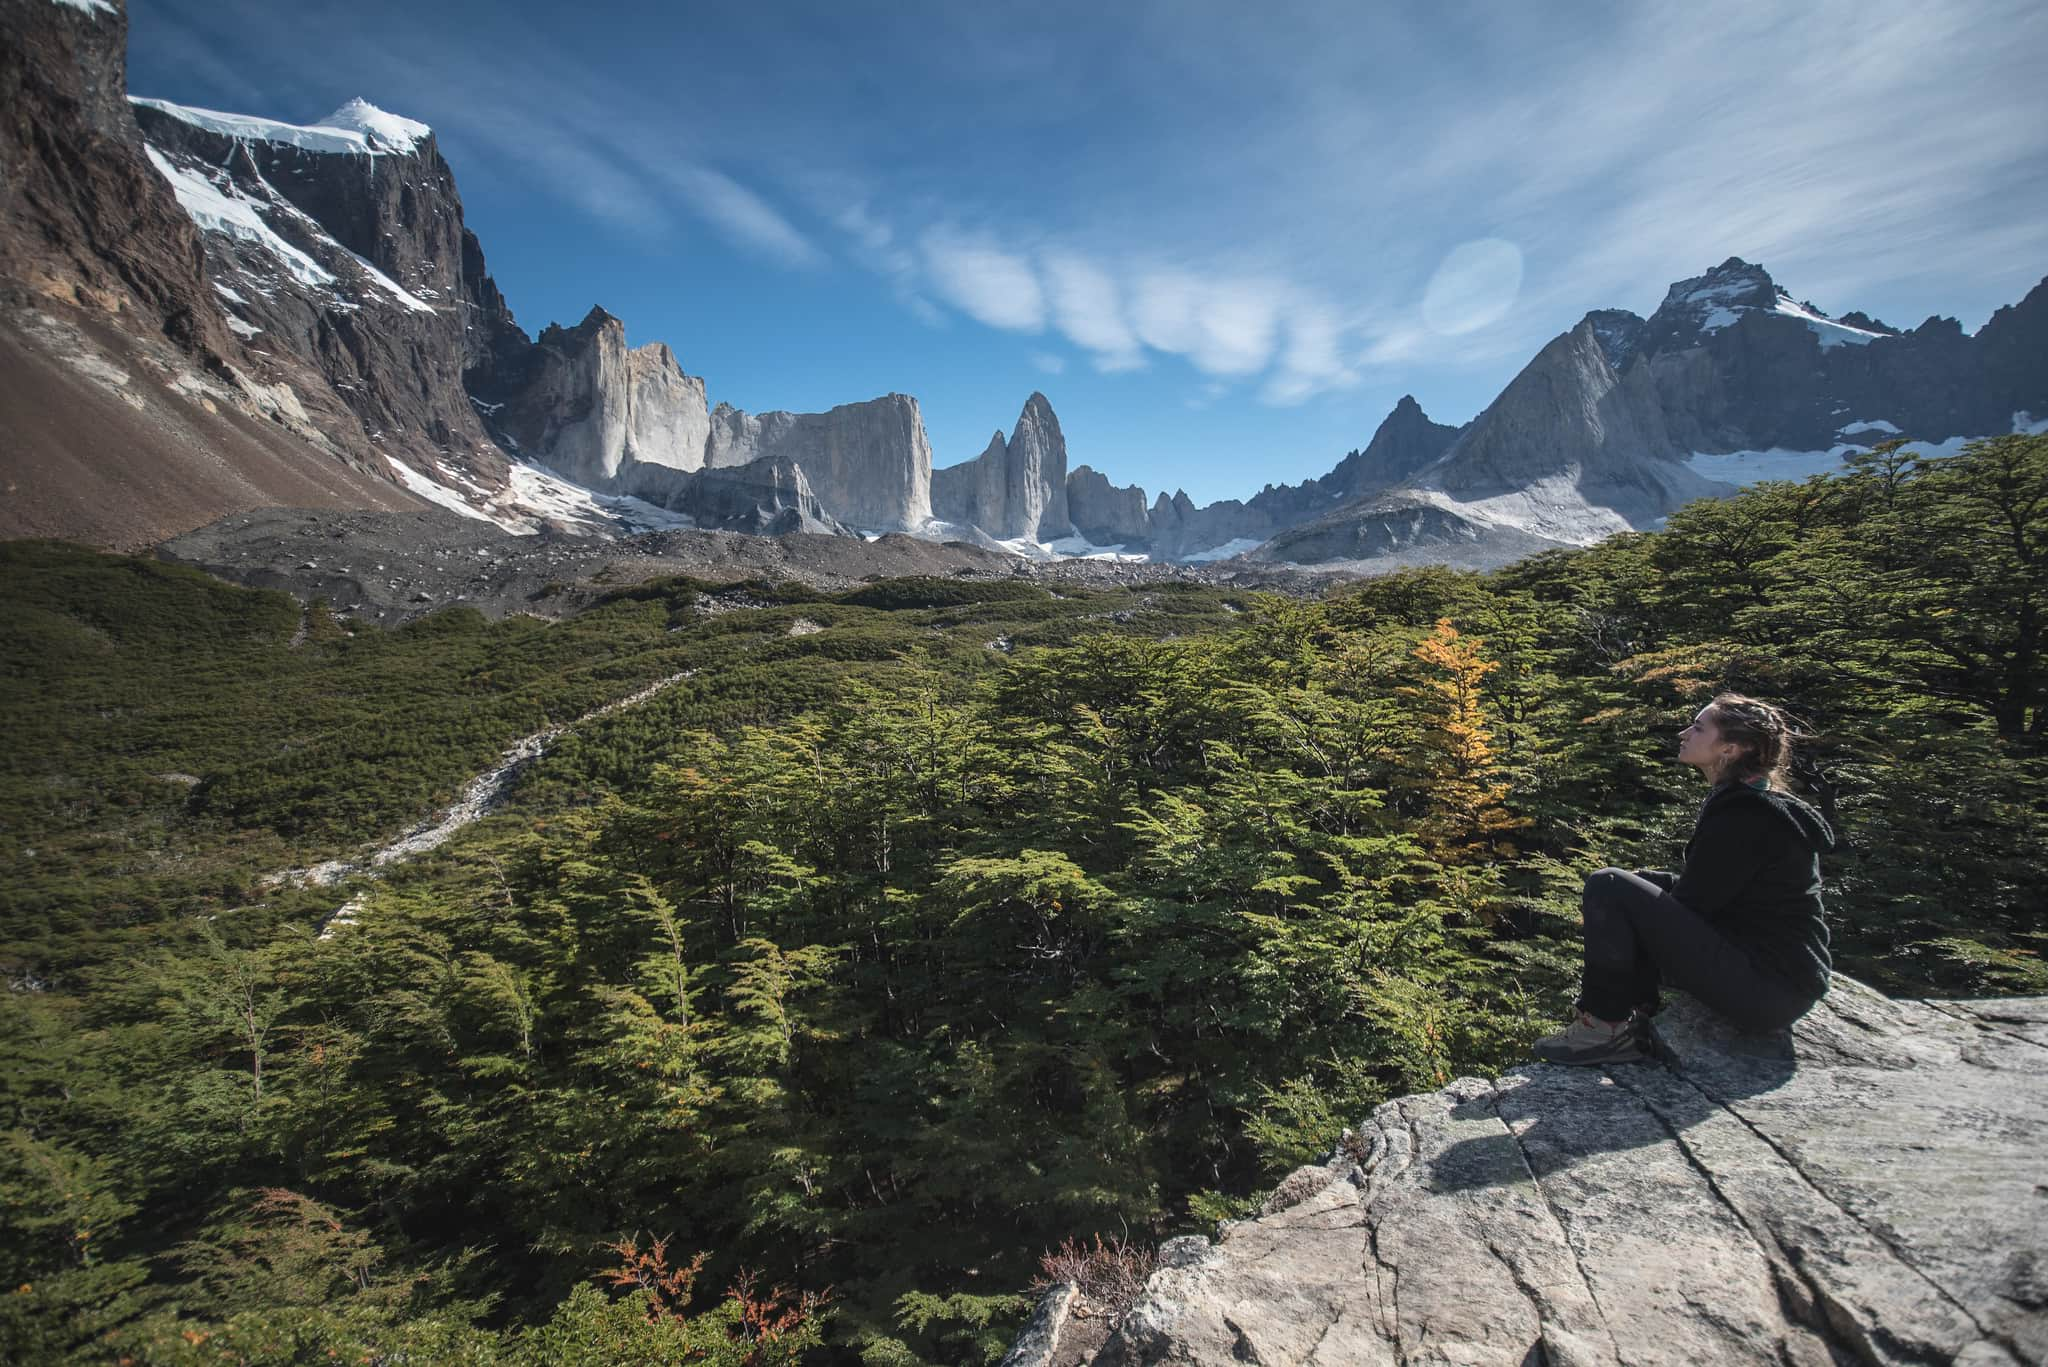 The British Viewpoint in Torres del Paine National Park